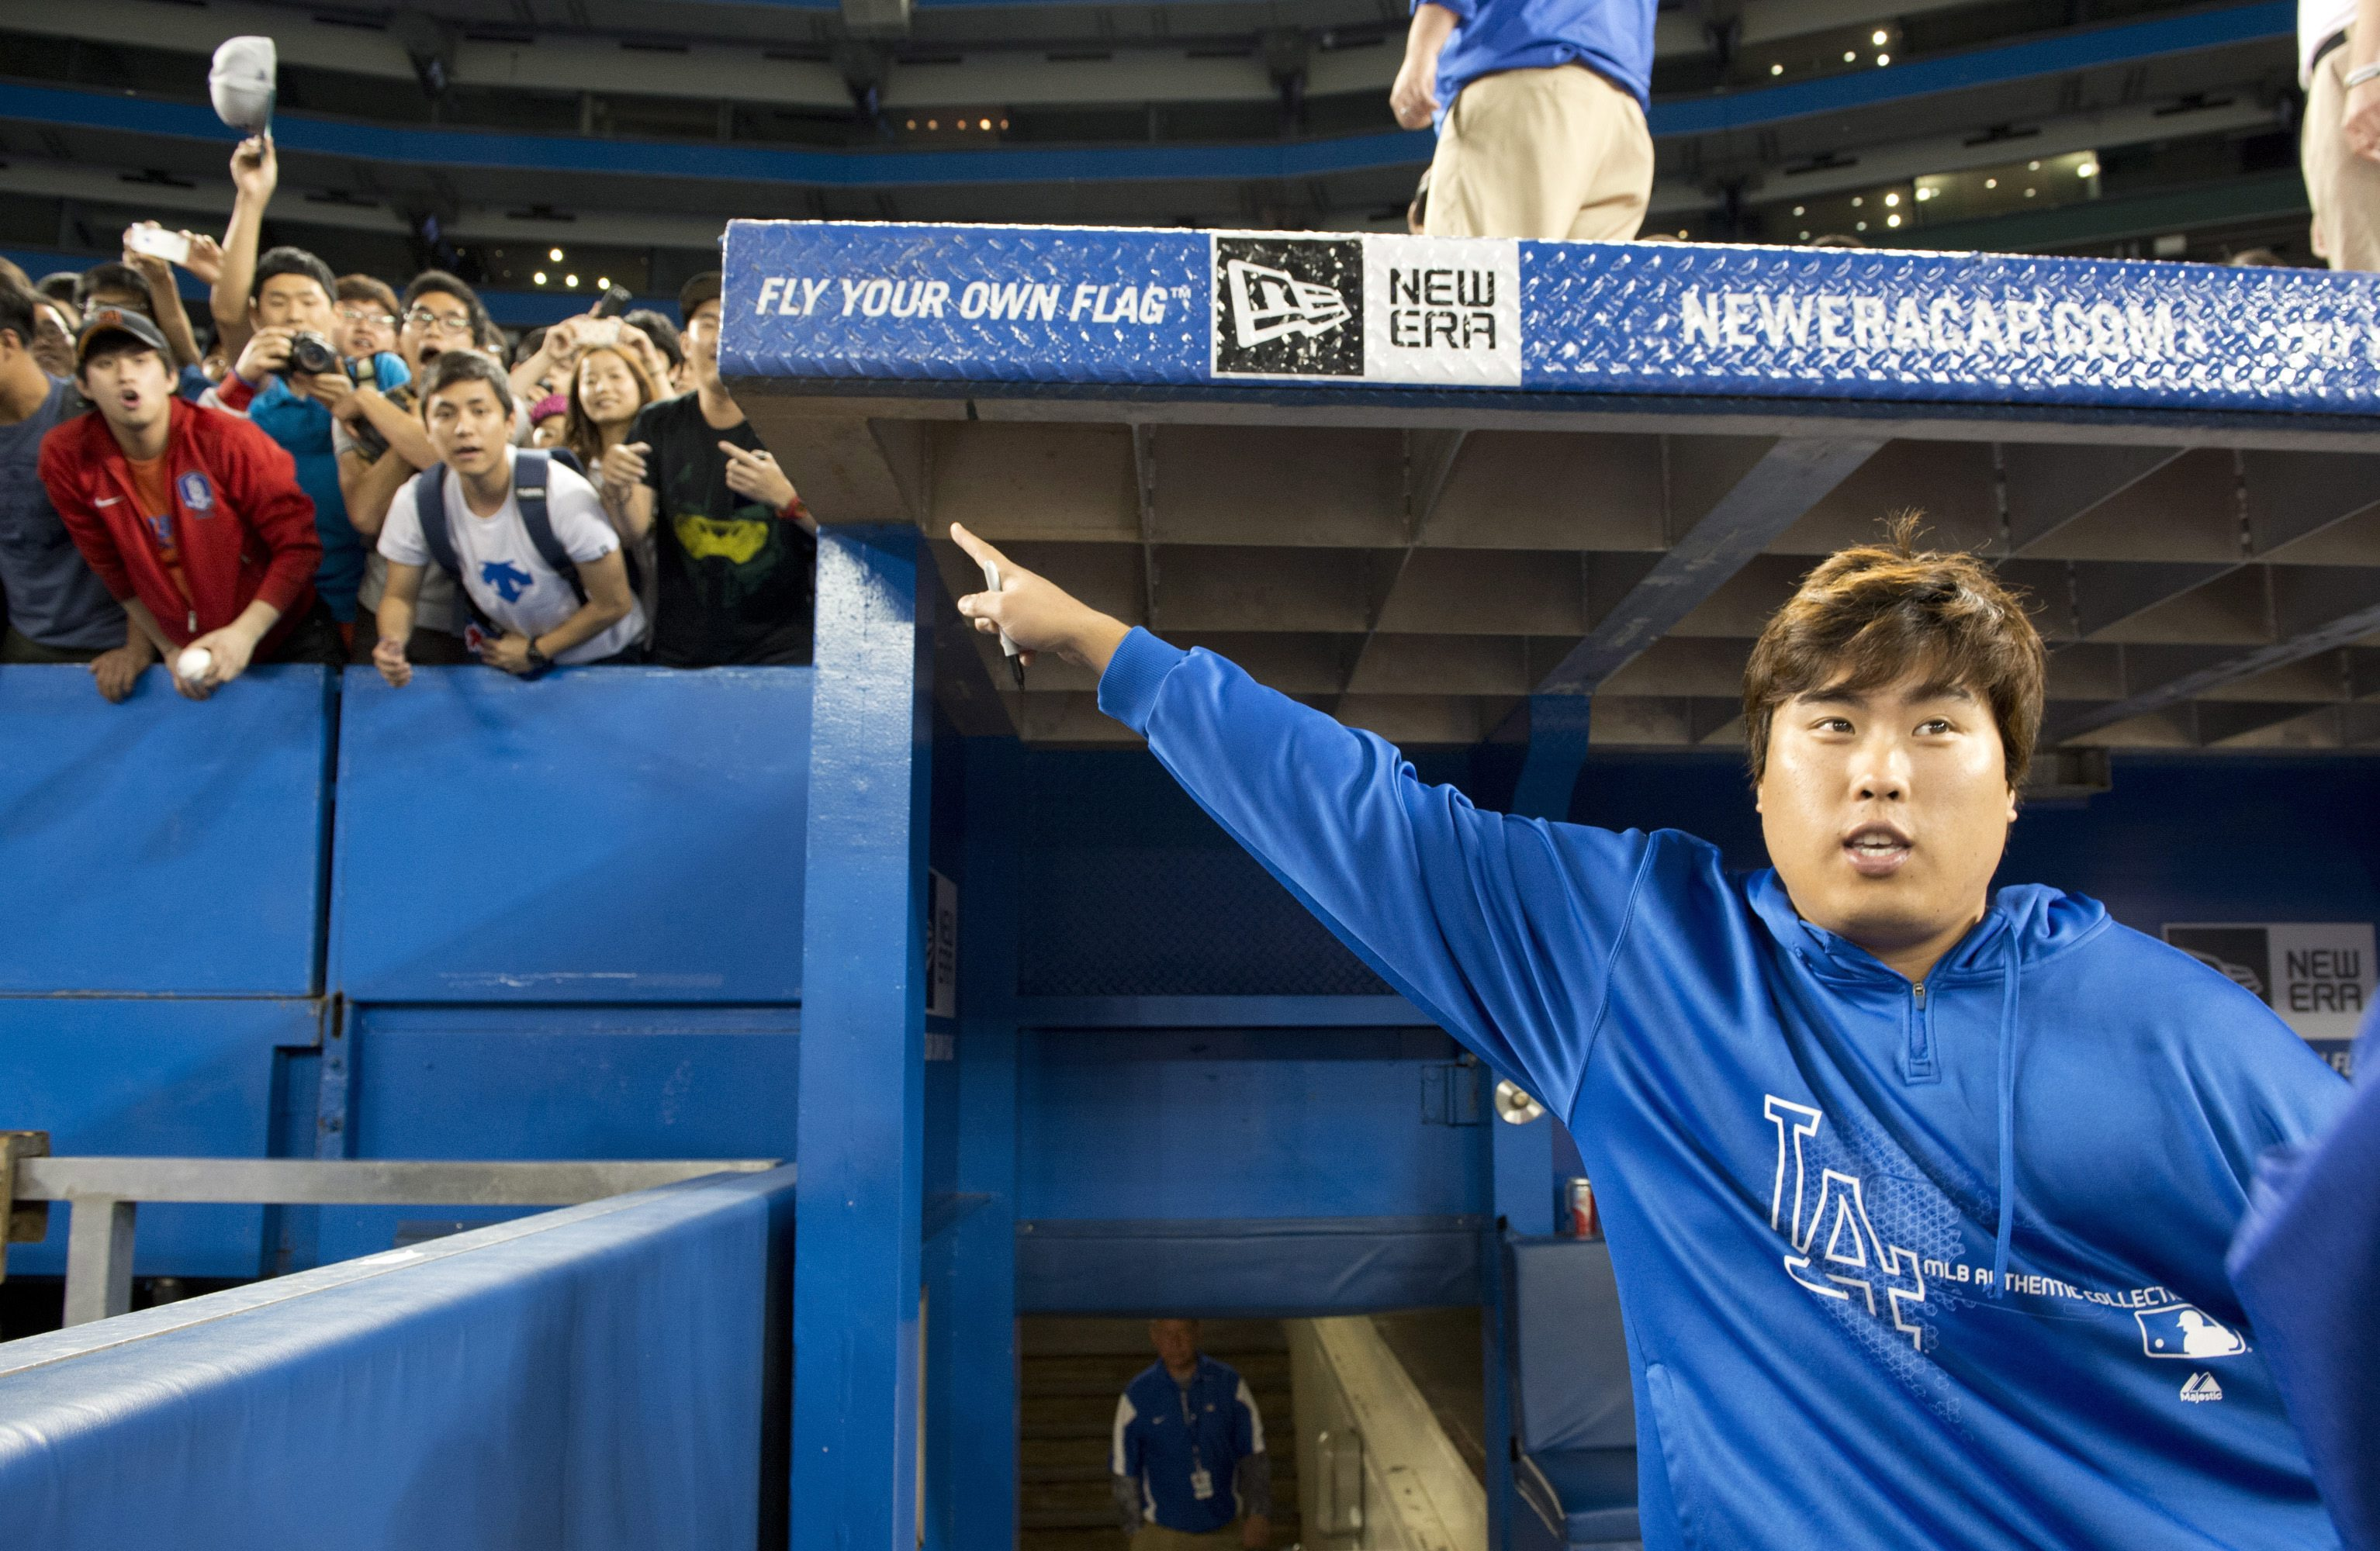 Dodgers' pitcher Ryu Hyun-jin will have his pen ready like he is holding one in the picture. (AP)